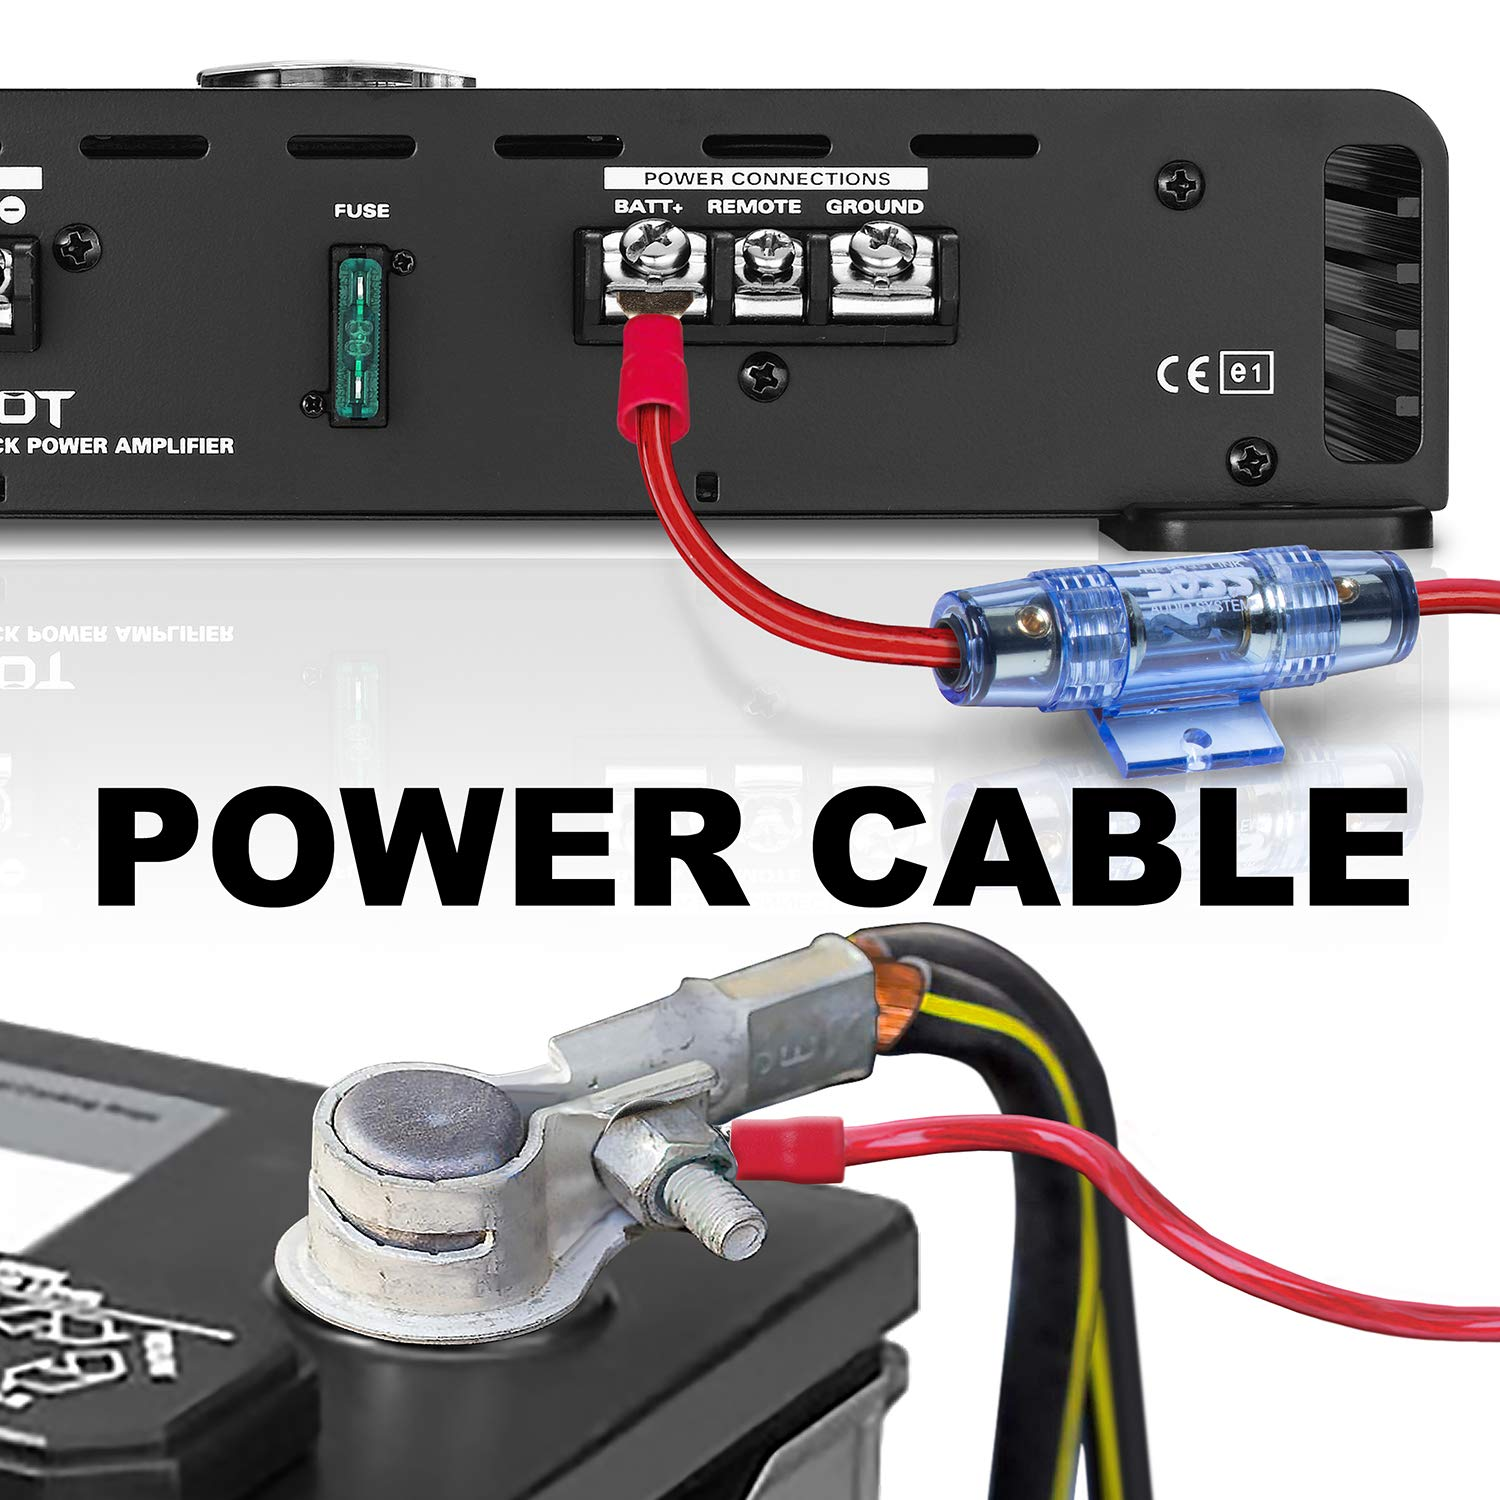 boss audio kit2 8 gauge amplifier installation wiring kit – a car amplifier  wiring kit helps you make connections and brings power to your radio,